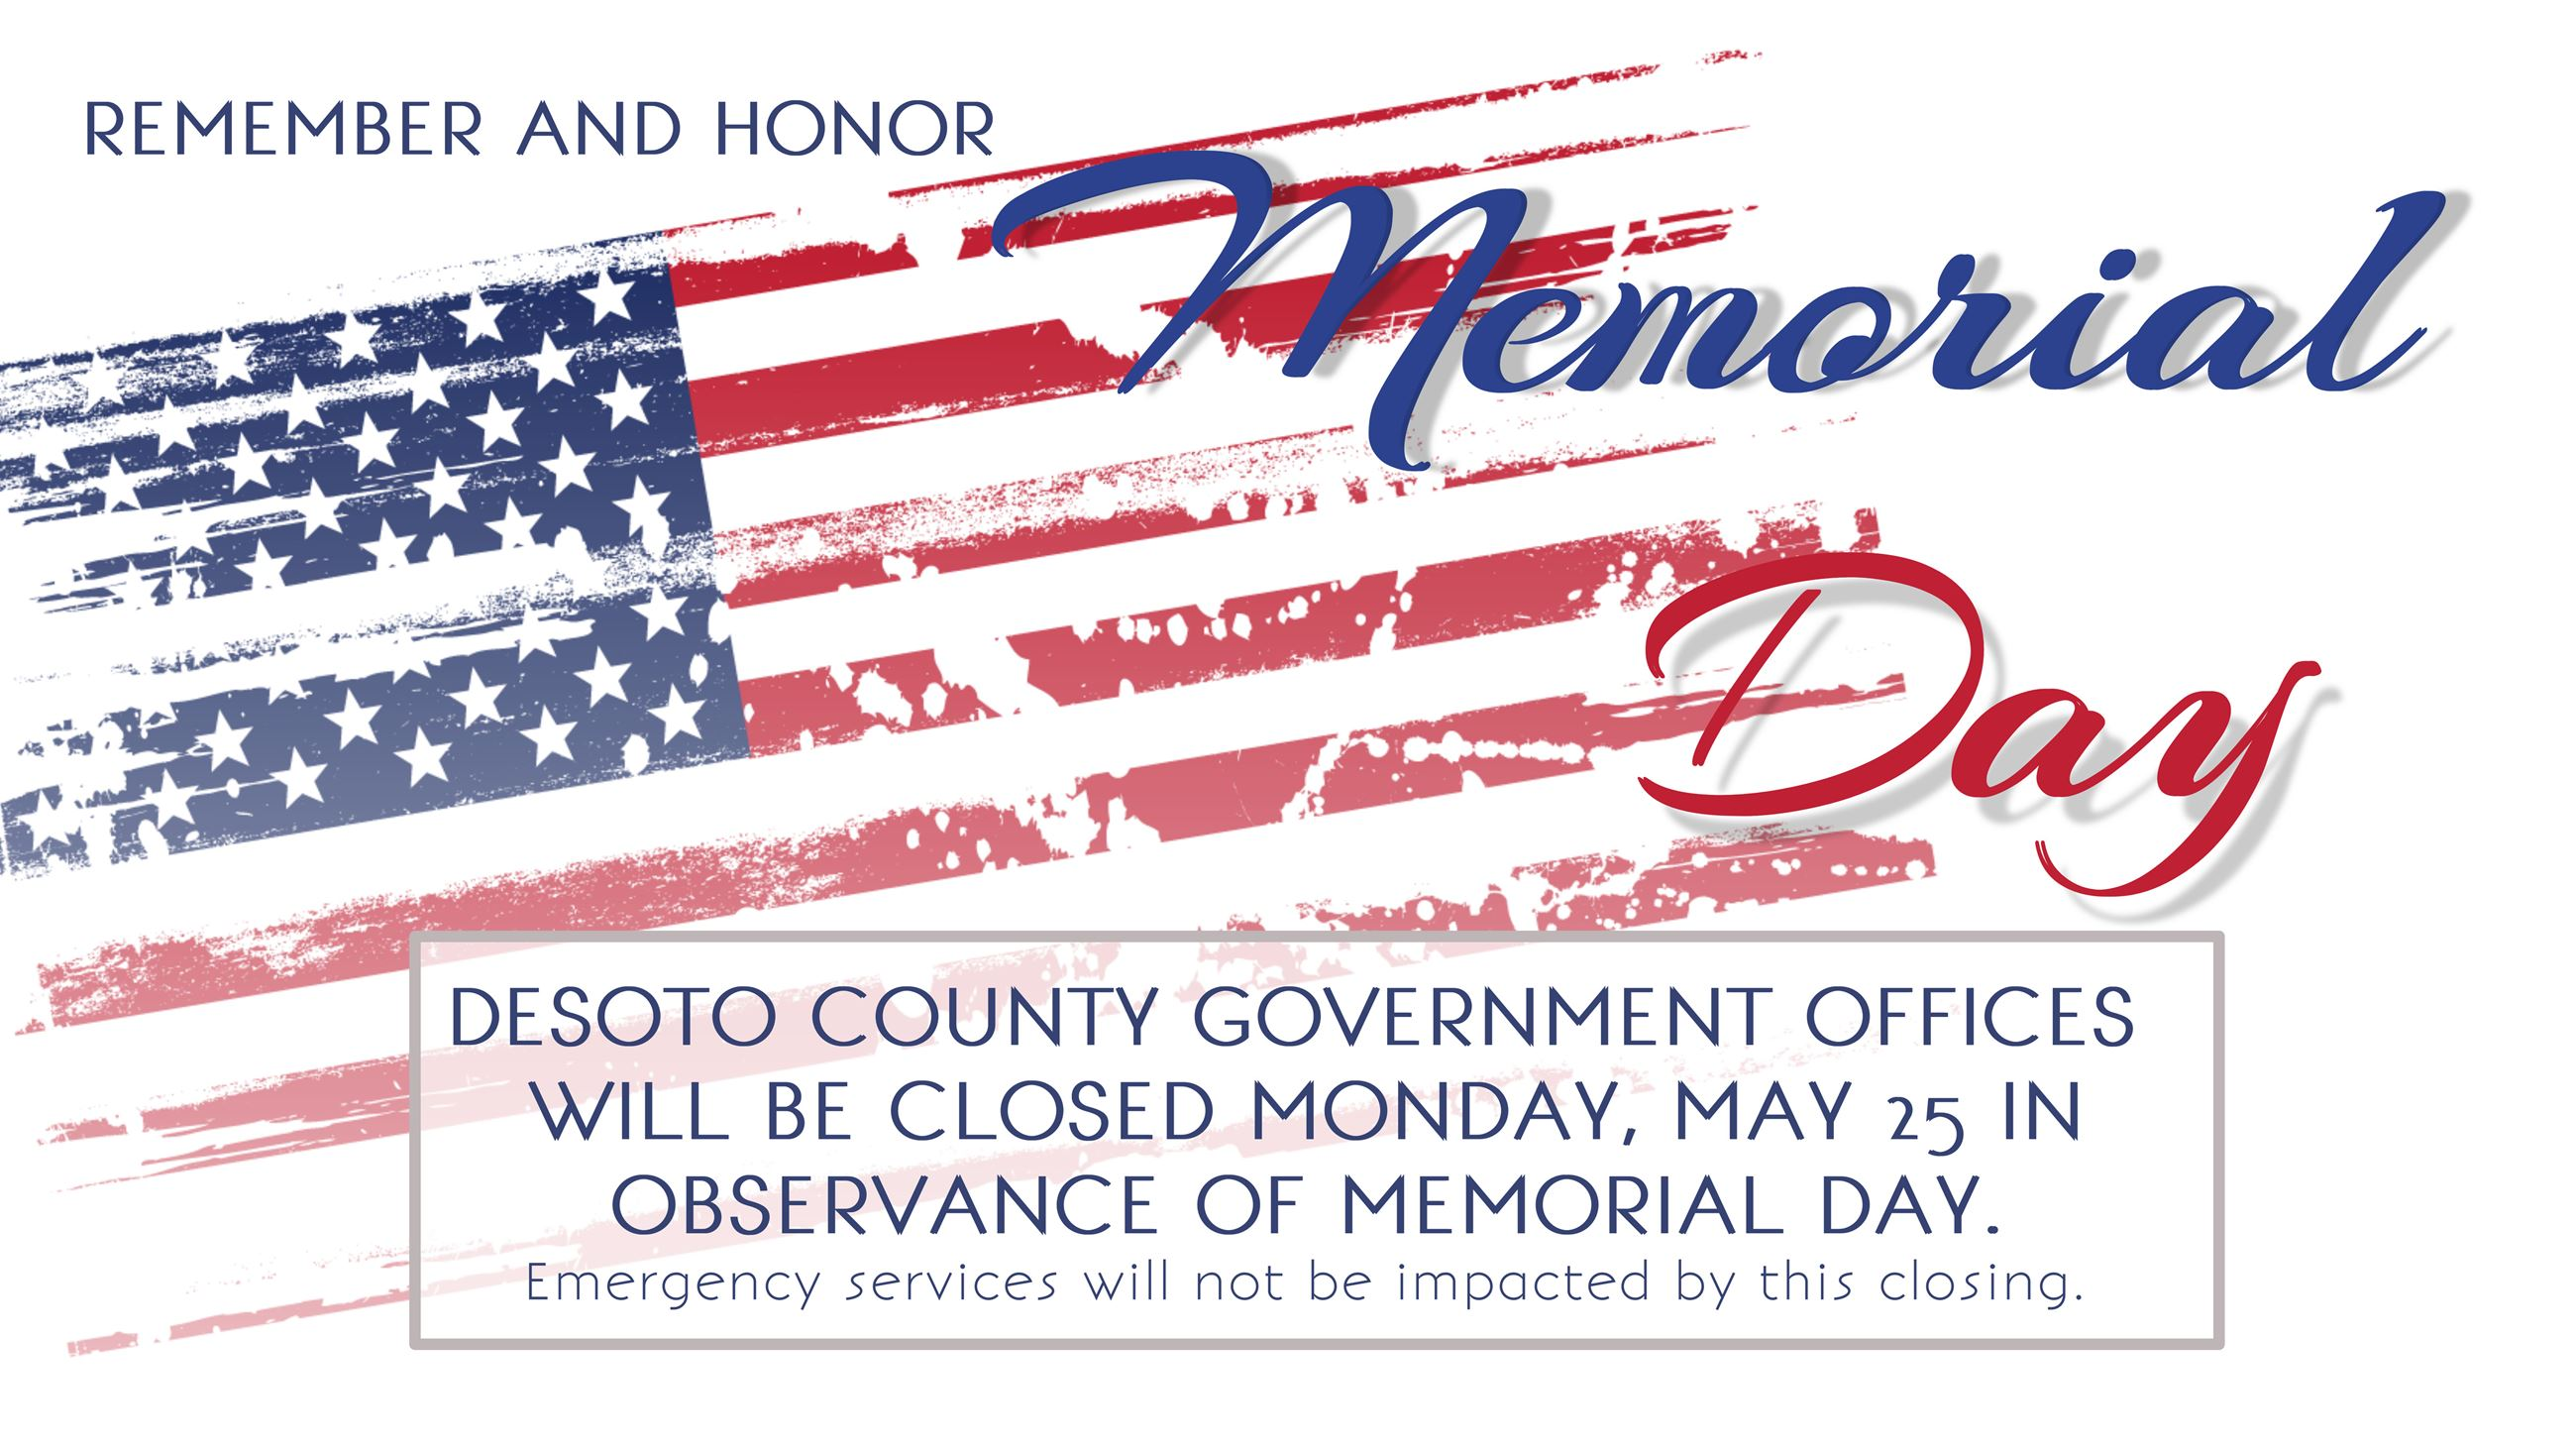 DeSoto County Government Closures on Memorial Day